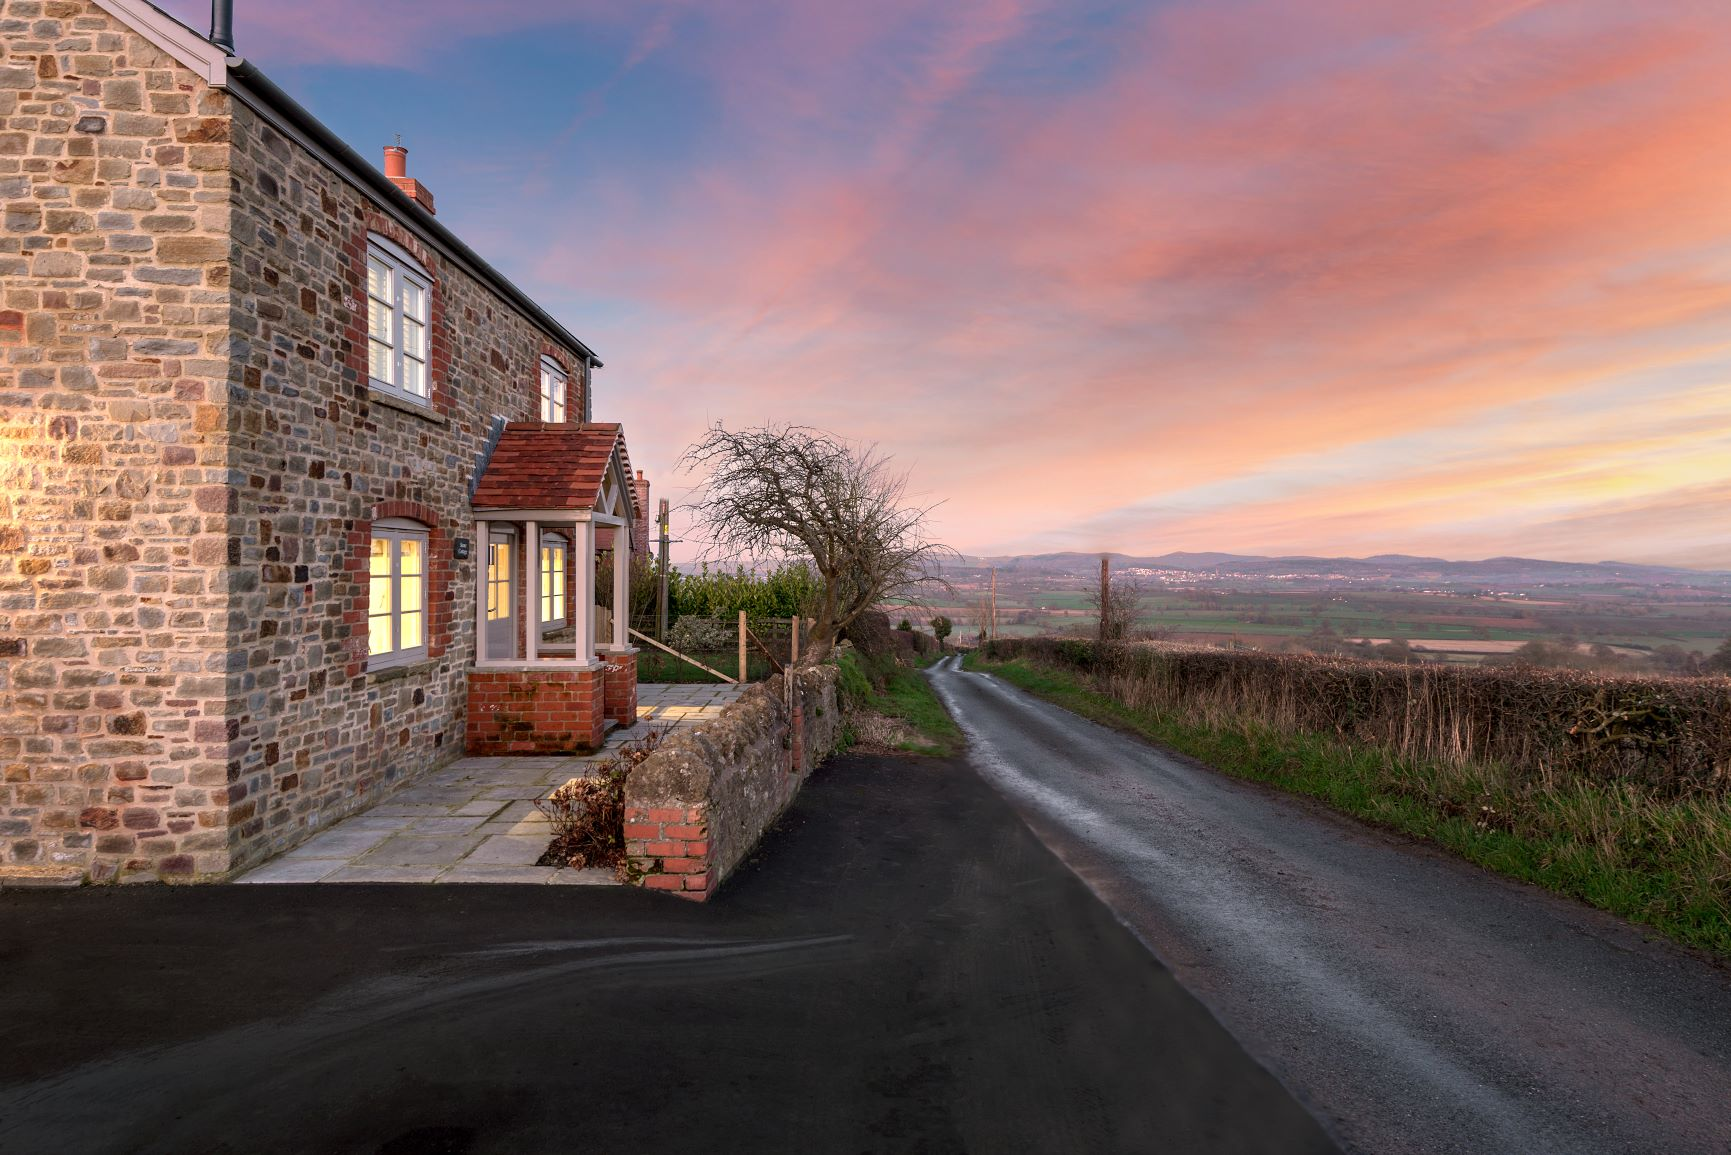 Sleeps 2, Romantic, Luxurious Cottage with Original features and Amazing Views